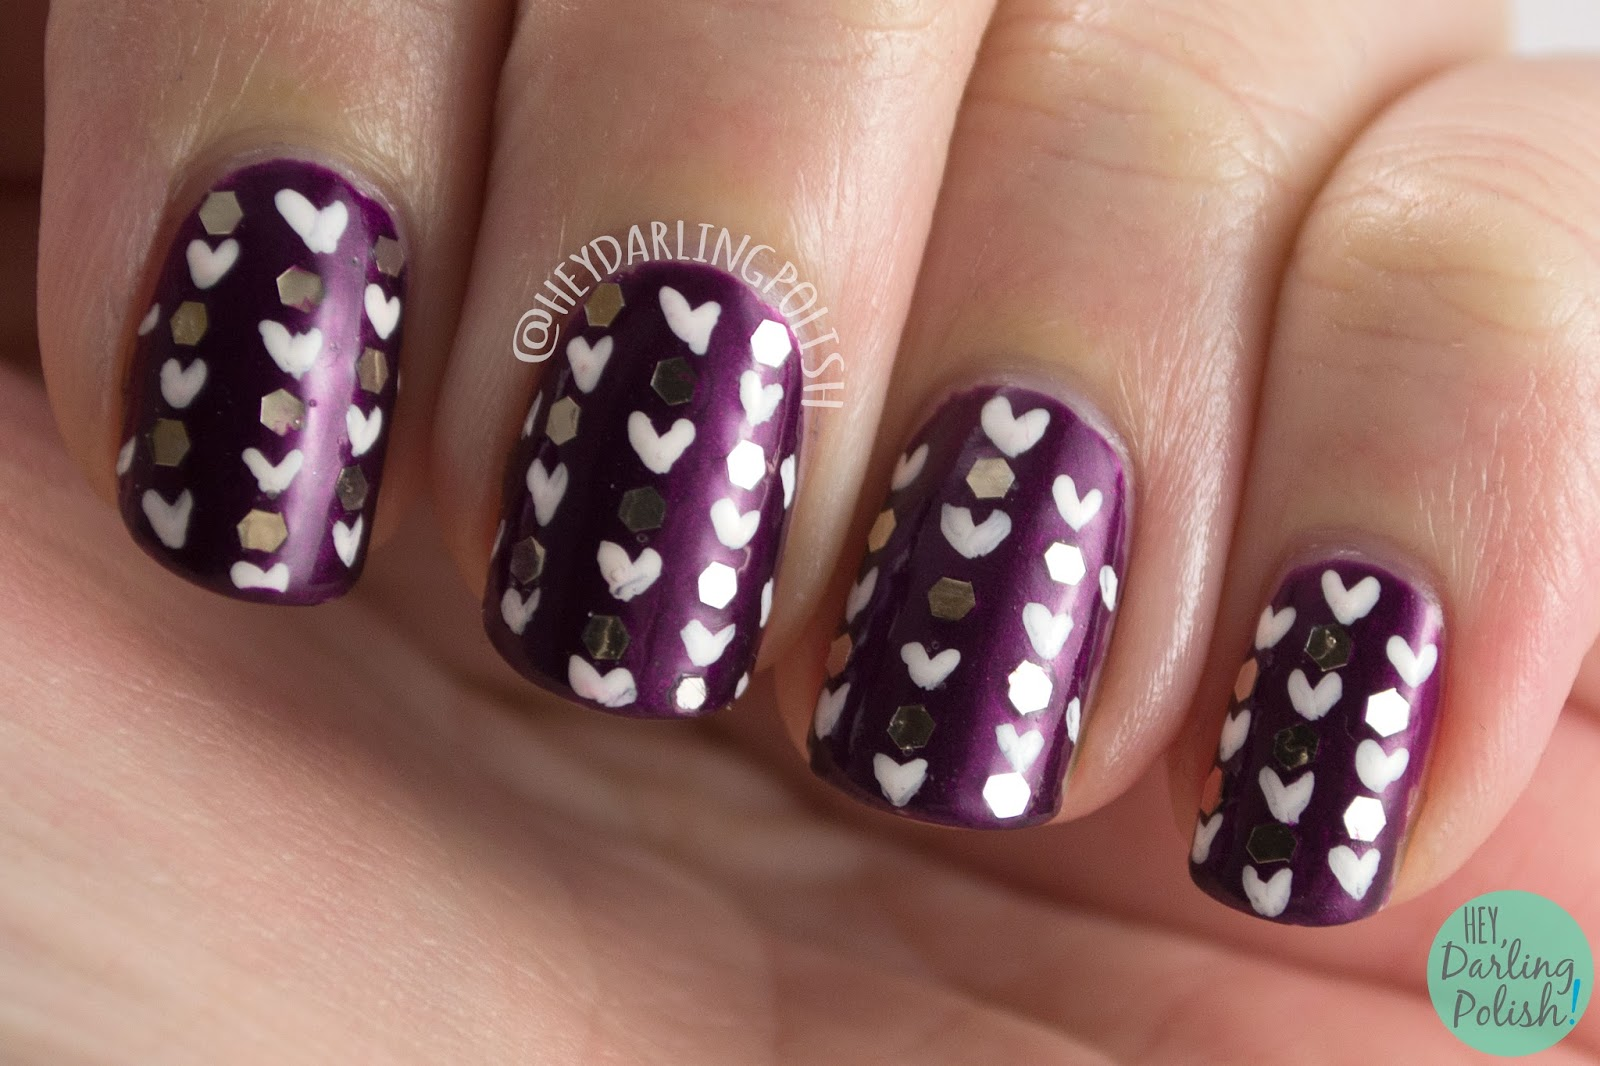 nails, nail art, nail polish, purple, hearts, glitter, glequins, hey darling polish, 52 week challenge, pattern